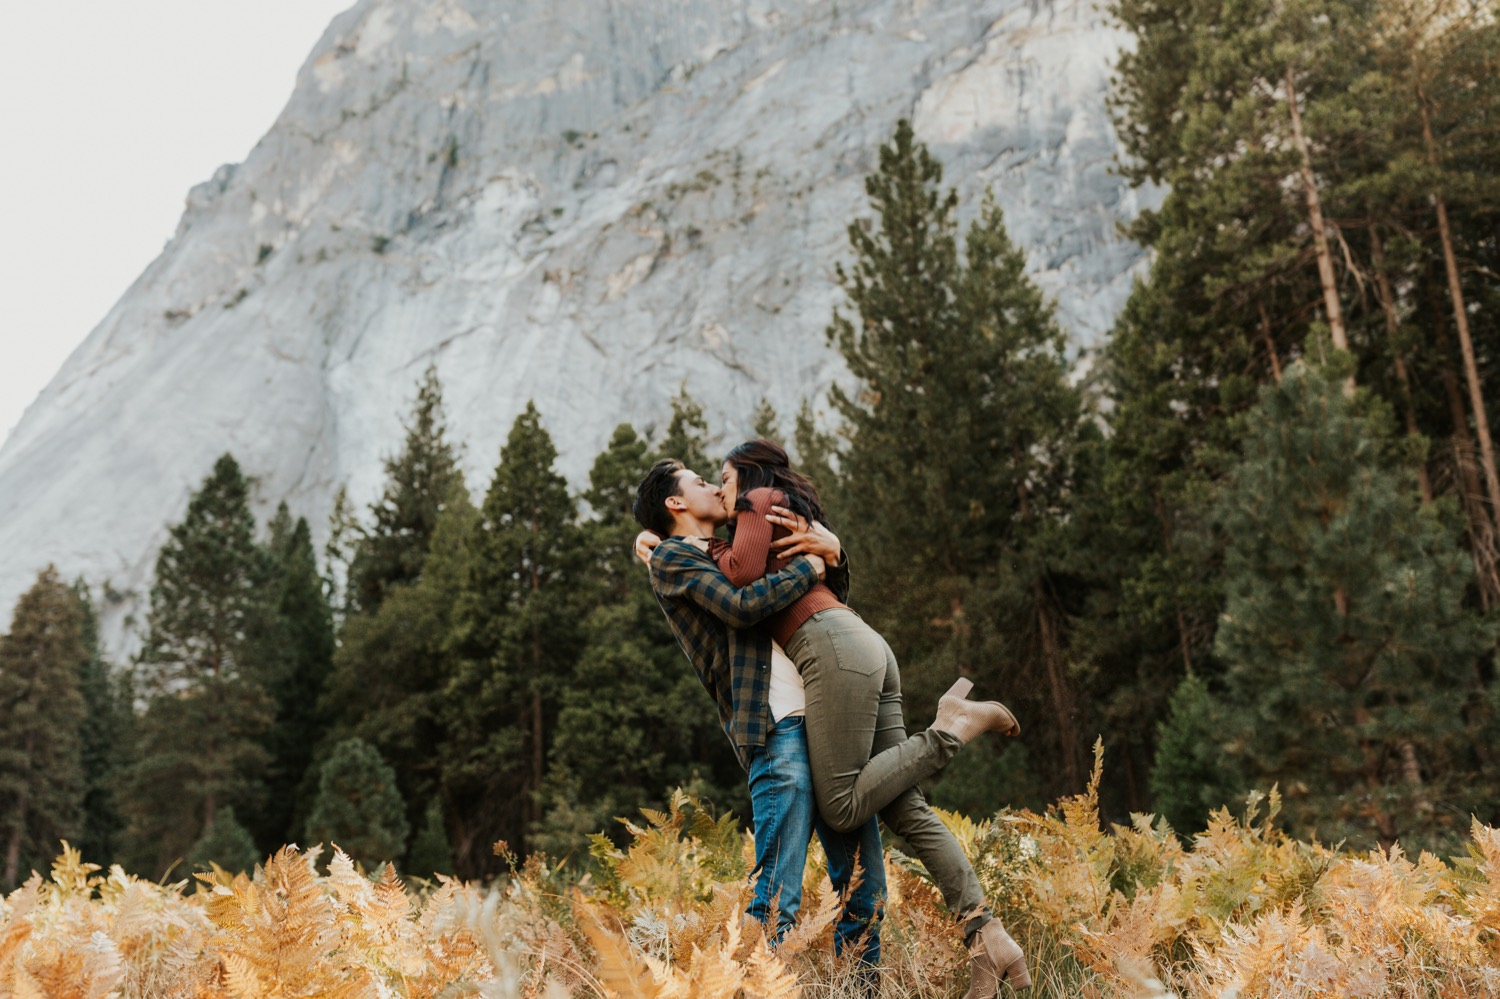 03_Yosemite-National-Park-Engagement-Session-Emily-Magers-Photography6.jpg